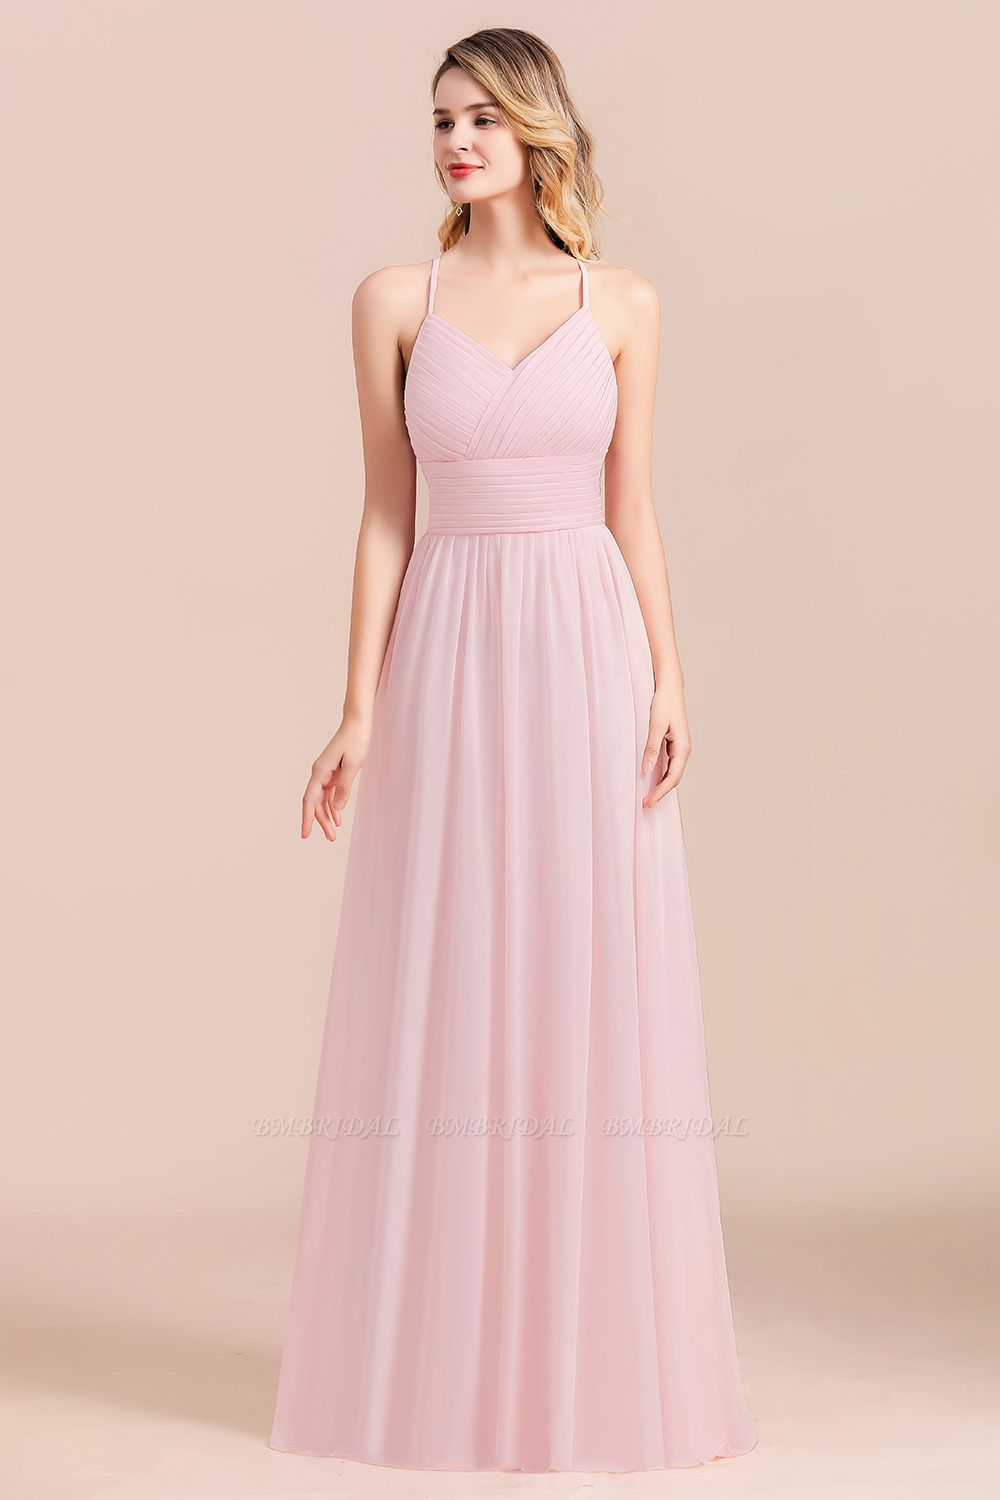 Gorgeous Spaghetti Straps Ruffle Pink Chiffon Bridesmaid Dress Cheap